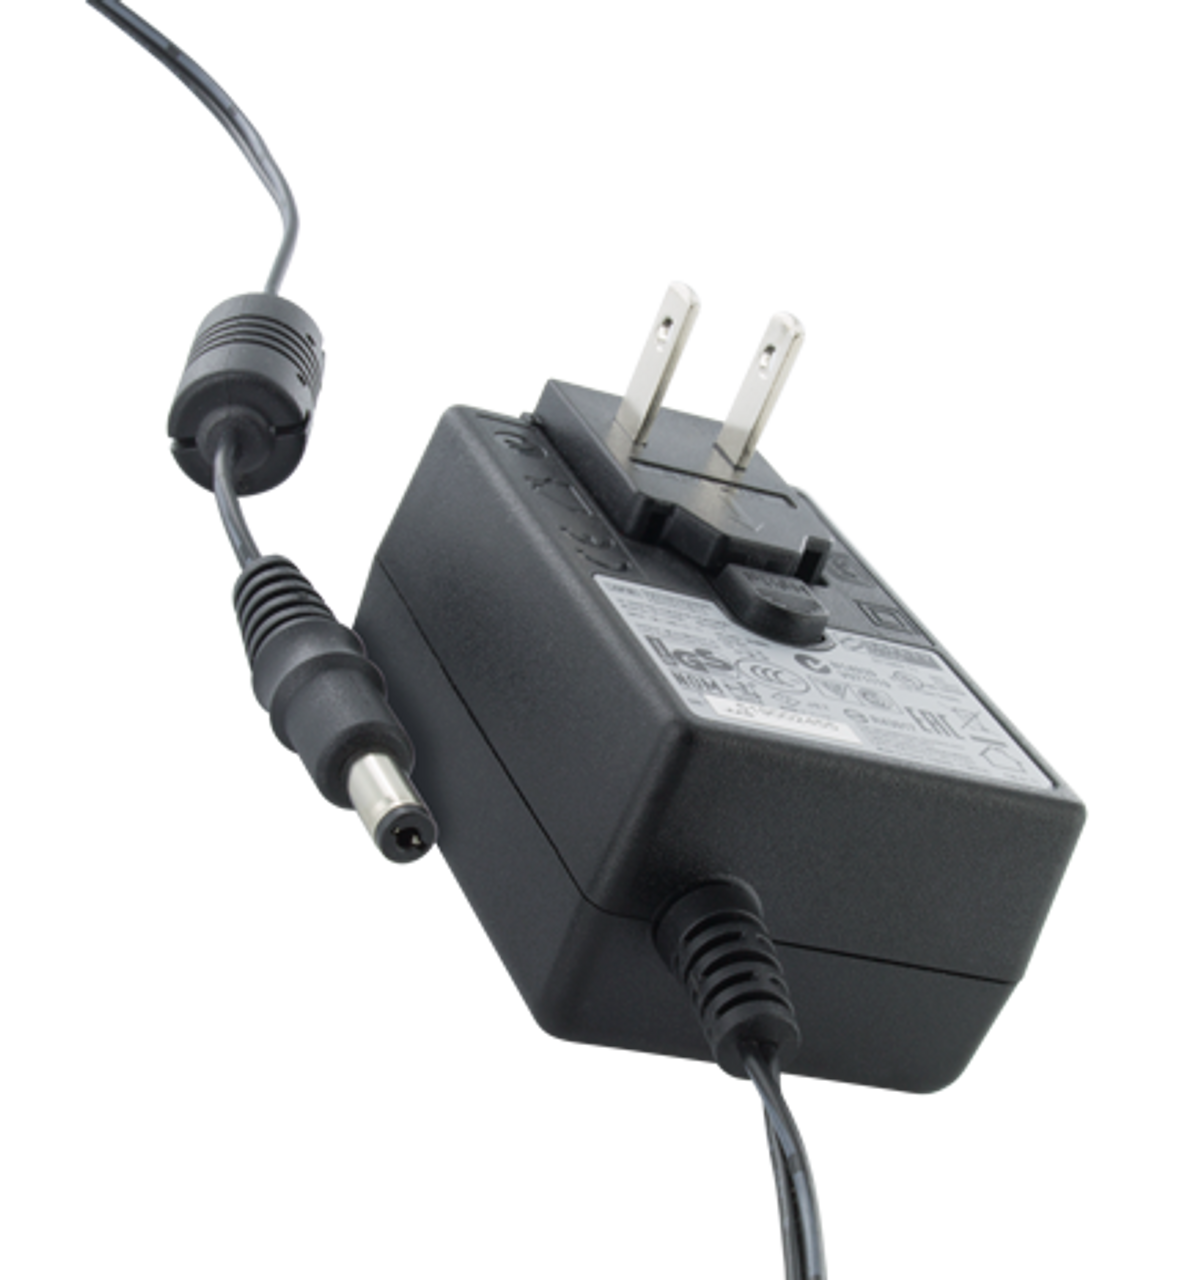 AC Adapter for Aegis Padlock Desktop Drives - Apricorn